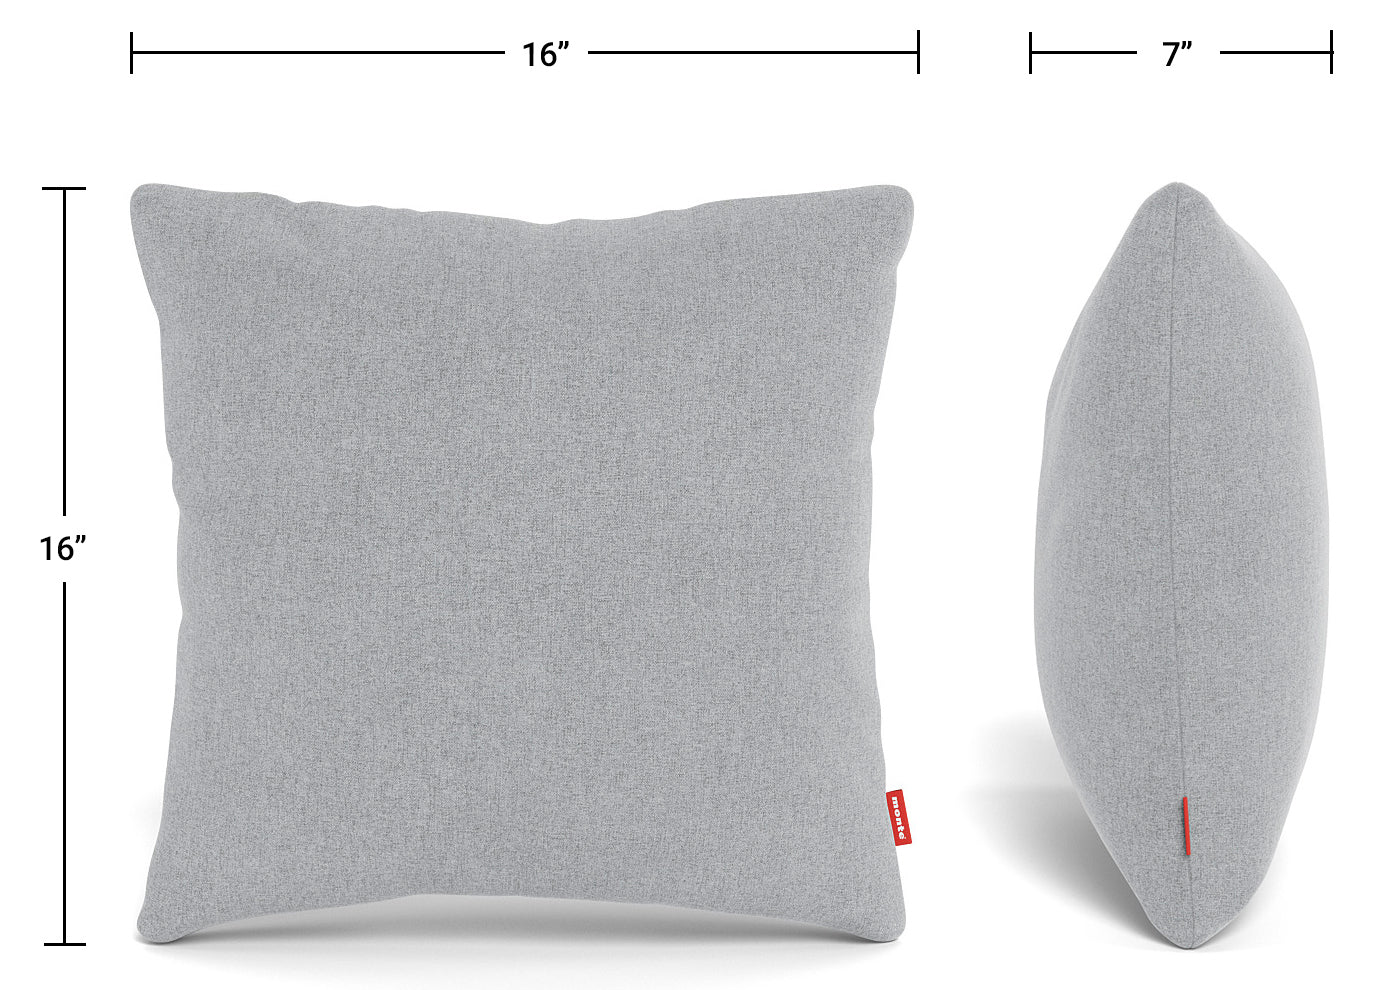 Modern Monte Design Square Toss Pillows Dimensions